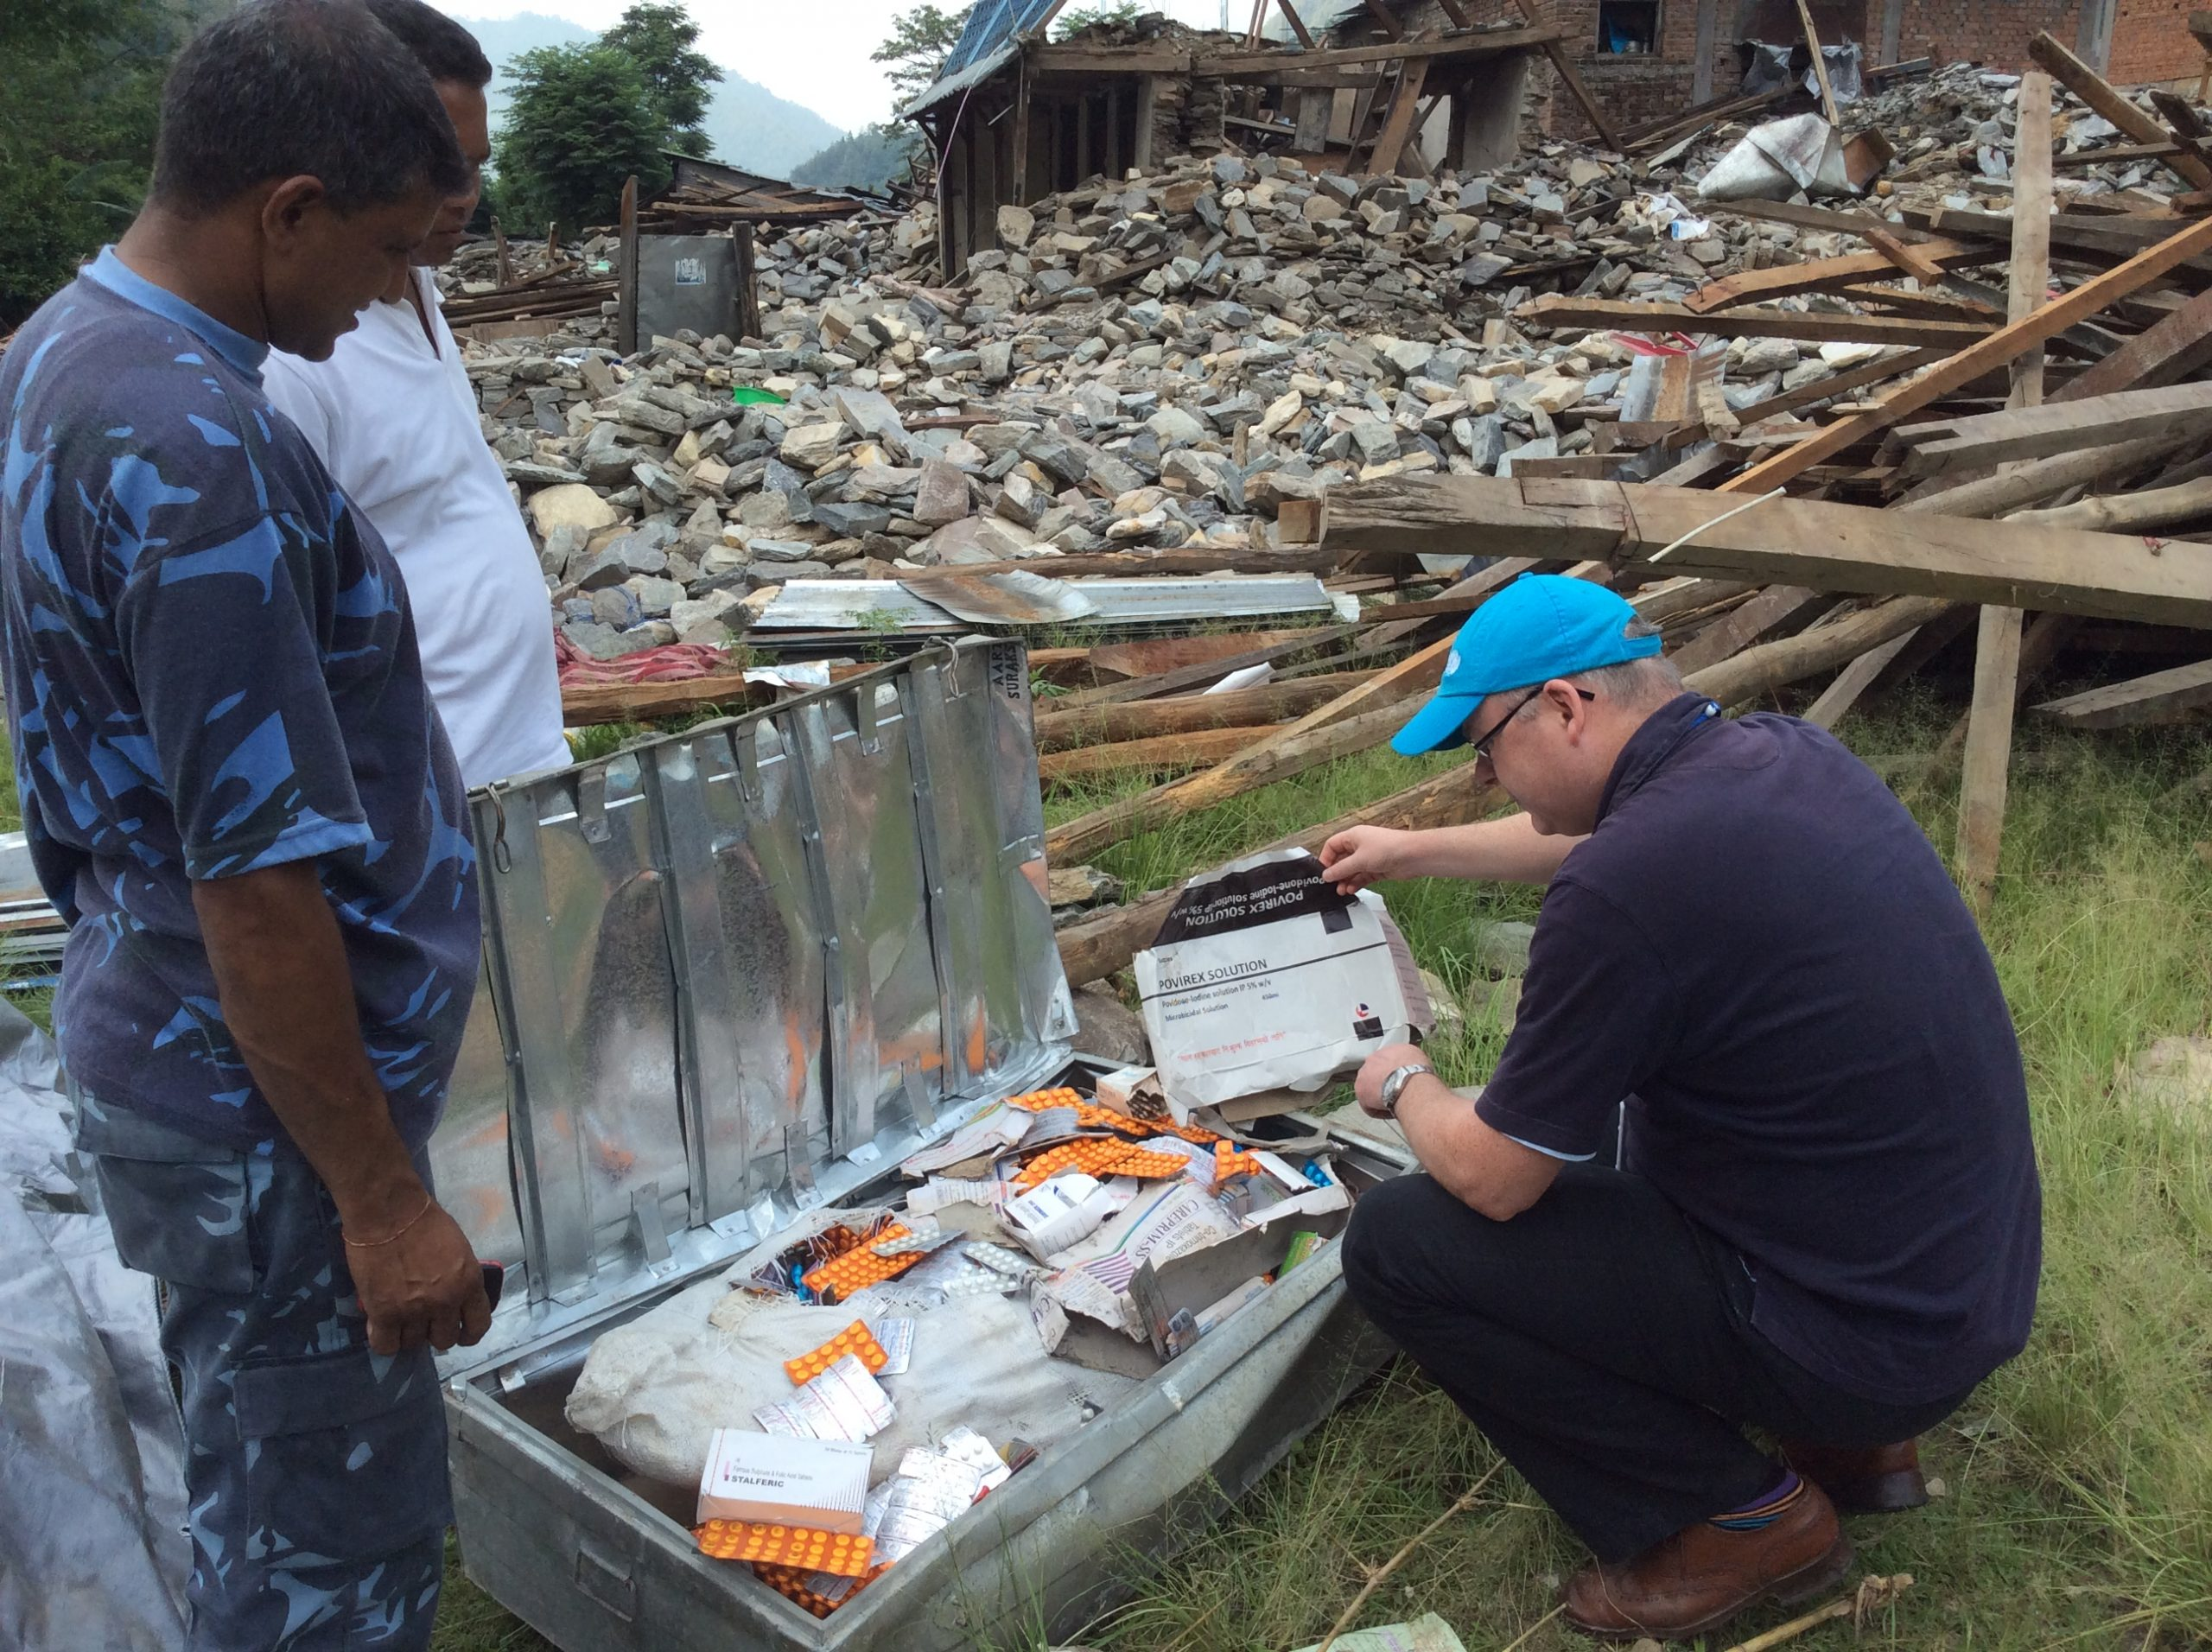 Douglas Noble examining a box of rescue supplies while surrounded by debris from the 2015 earthquake in Nepal